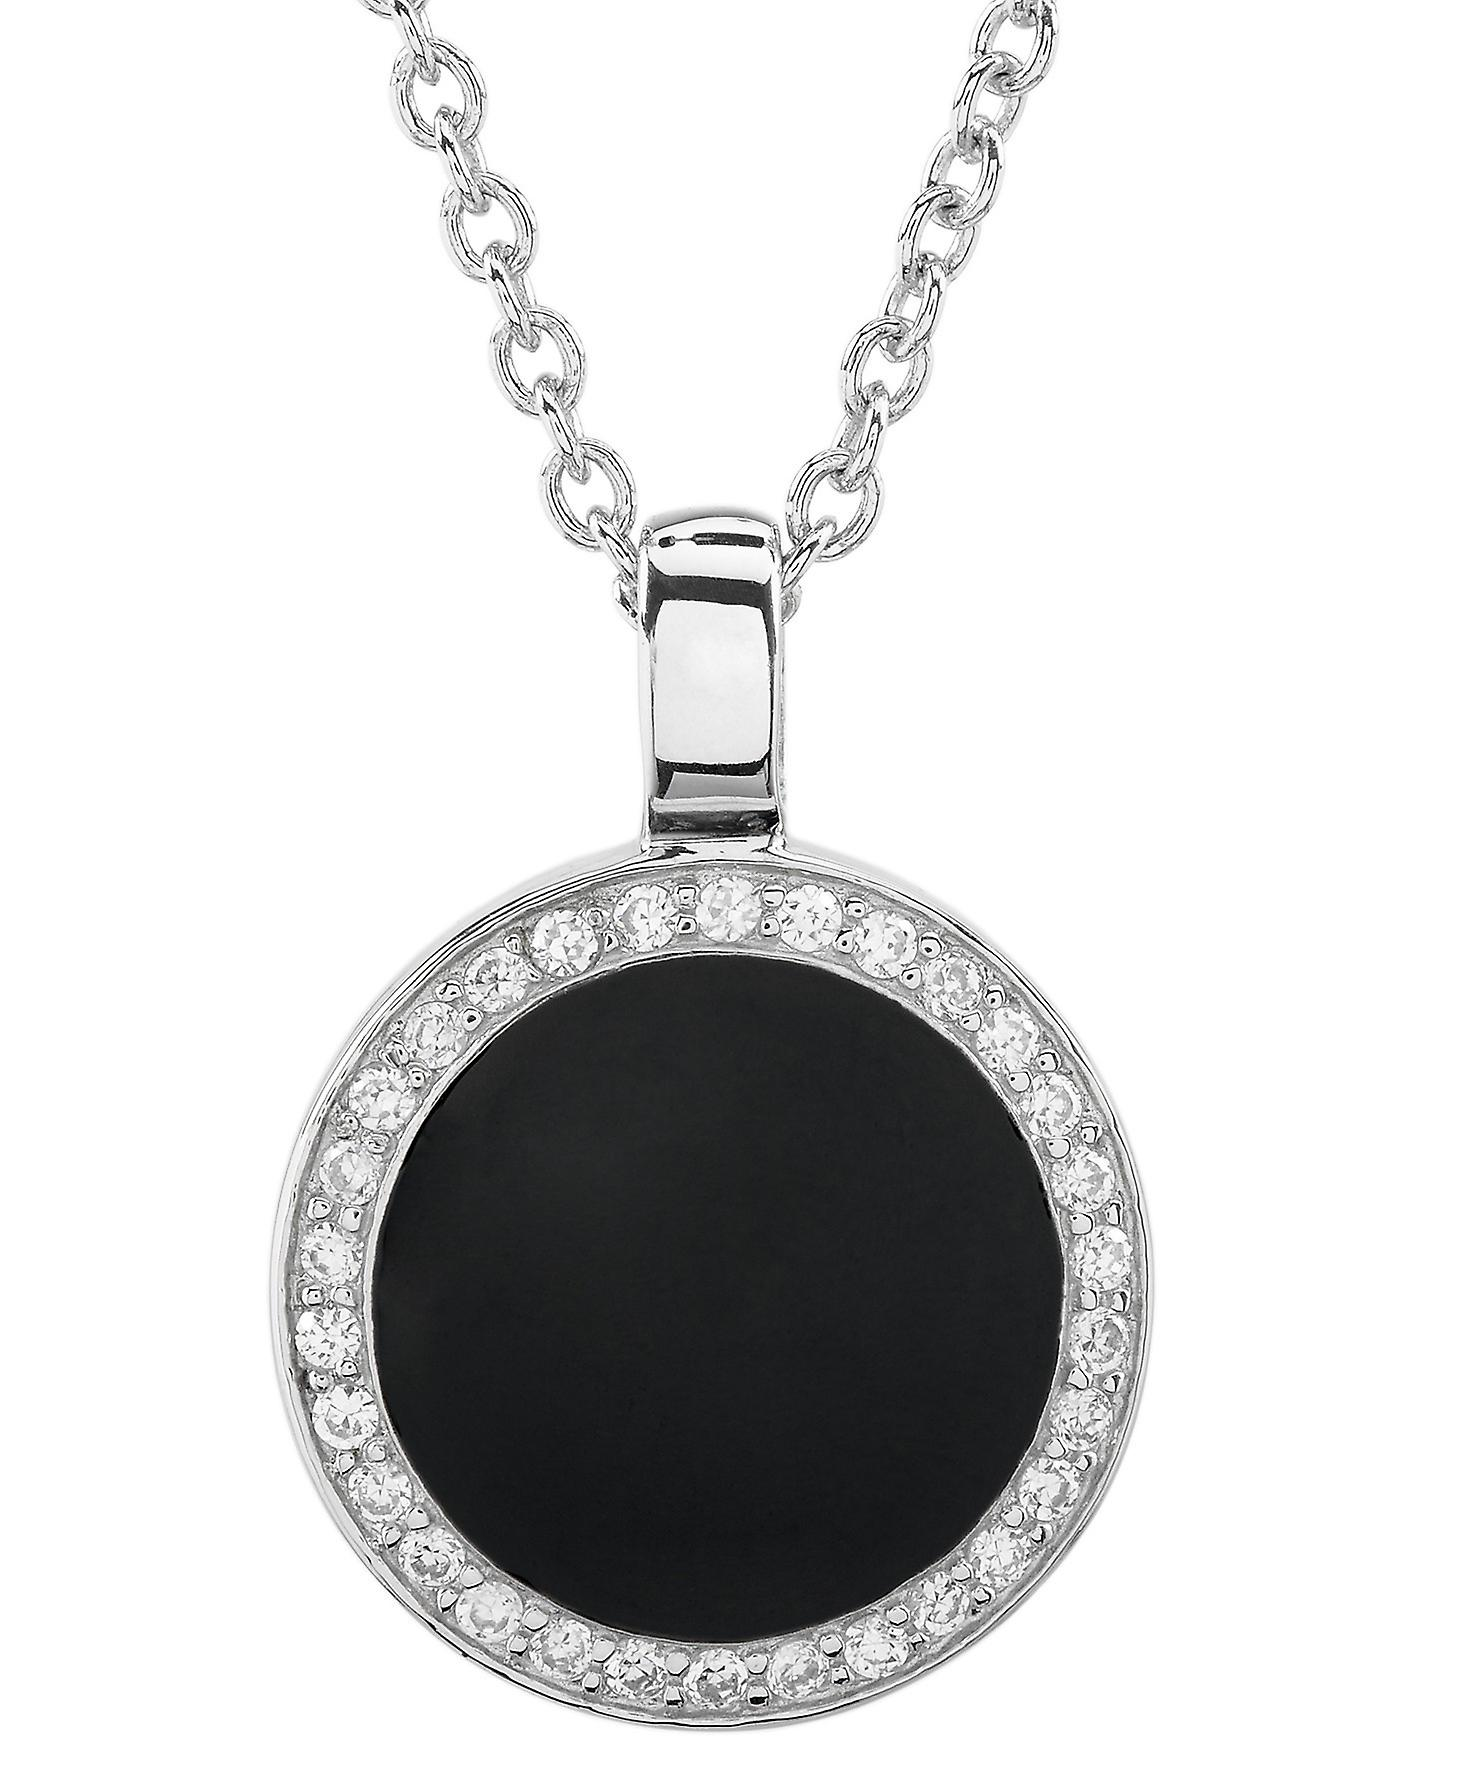 Burgmeister chain and pendant JBM1053-421, 925 sterling silver rhodanized, black varnish, white zirconia